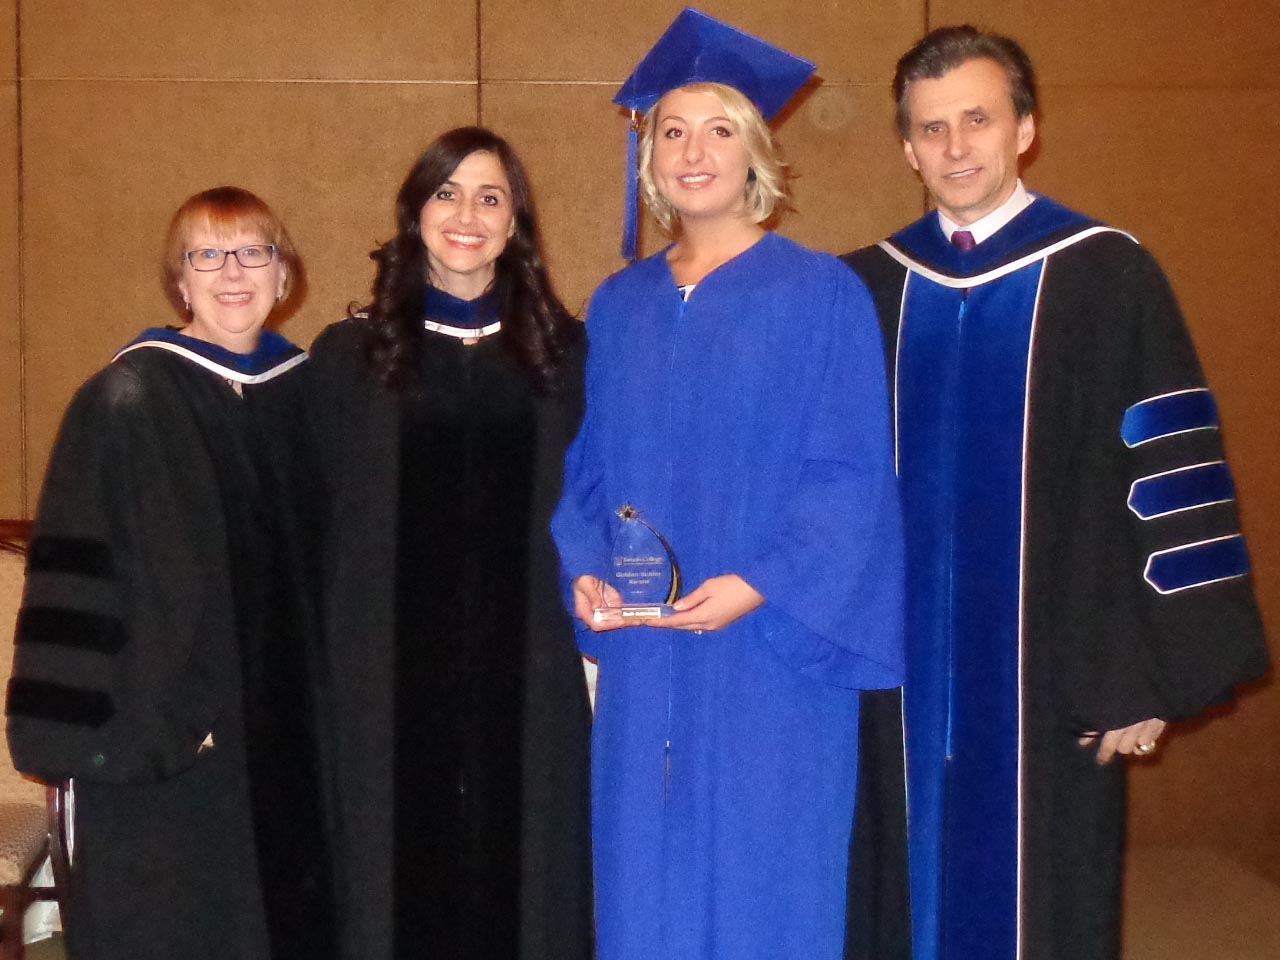 Toronto College of Dental Hygiene Graduation Ceremony 7